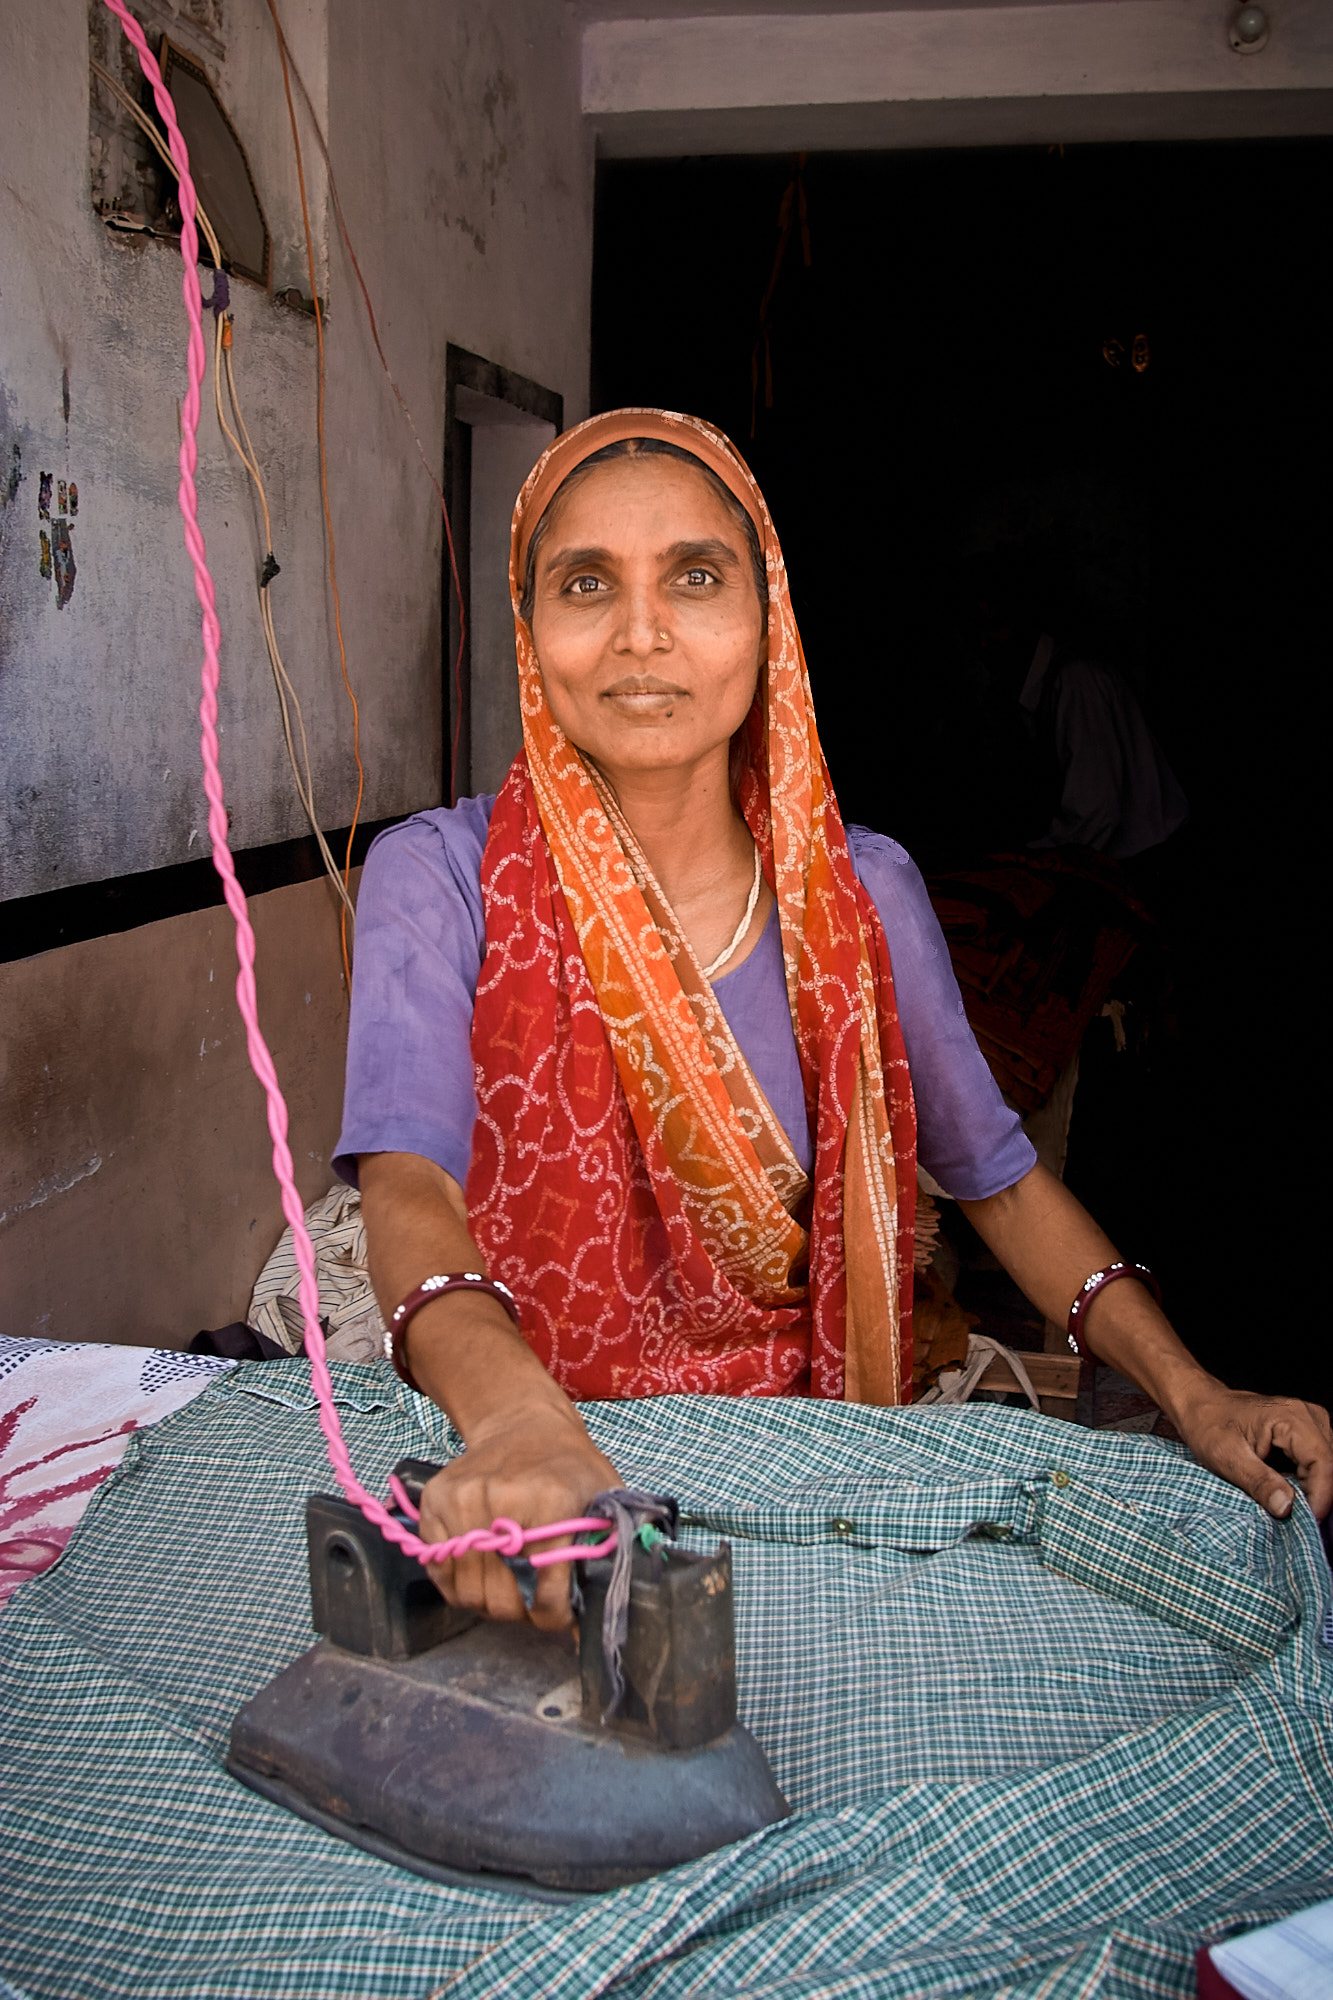 Woman Ironing, Jaipur, India